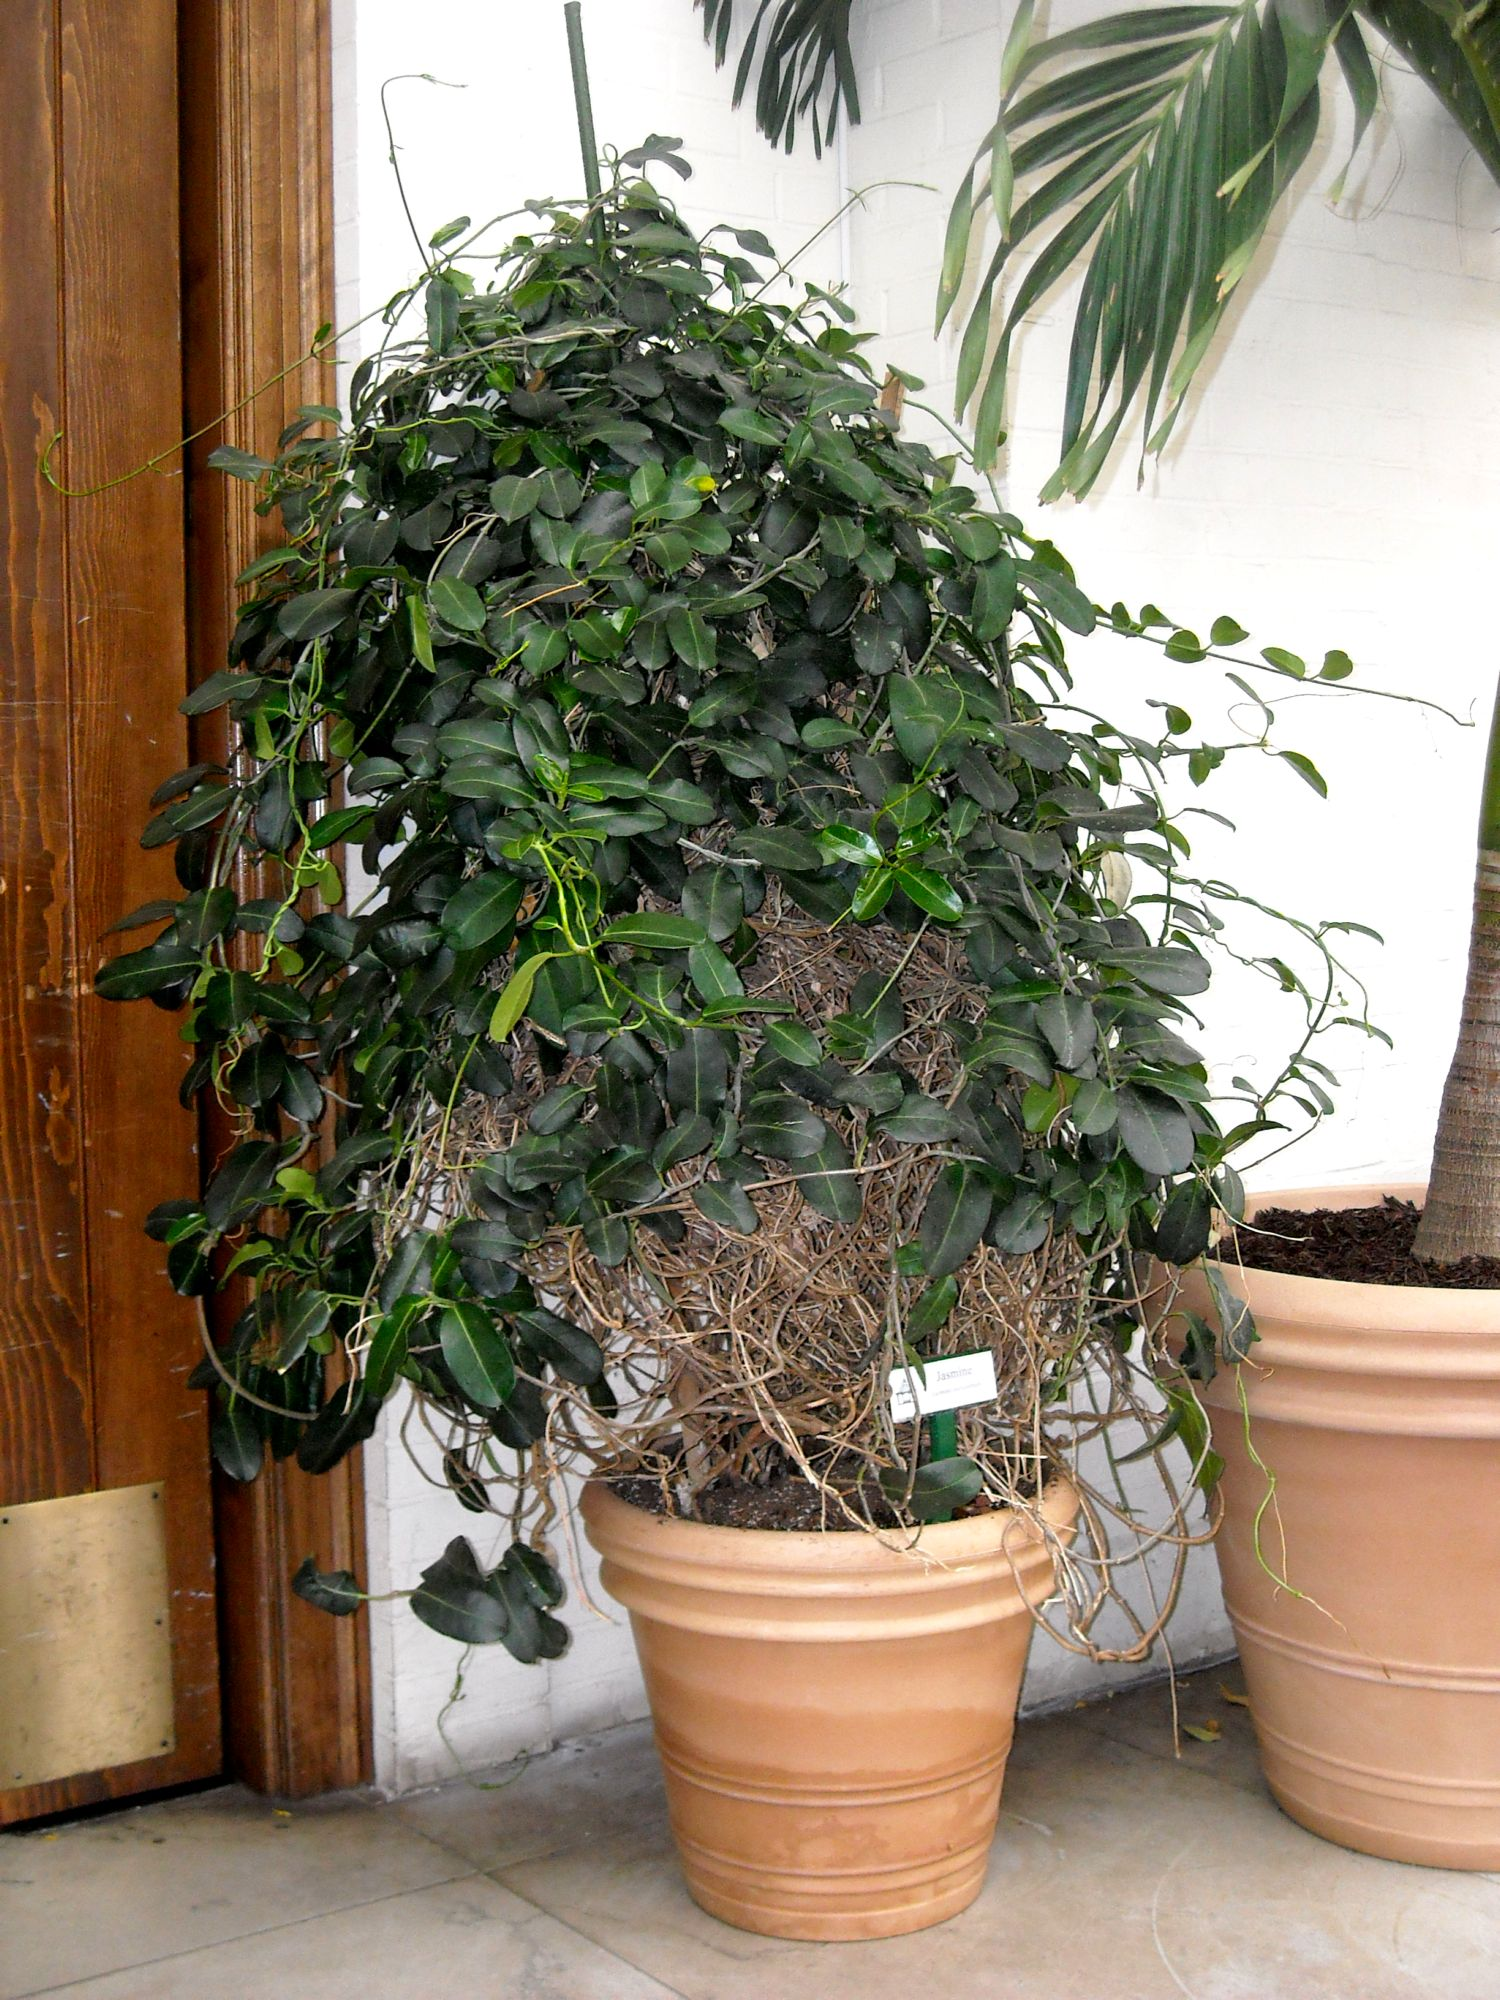 dscn0577 Palm Type Plants Common House on palm names types, short palm trees types, office plant types, palm tree plant types, house cactus types, phoenix palm trees types, potted house plants types, indoor houseplants types, house ferns types,